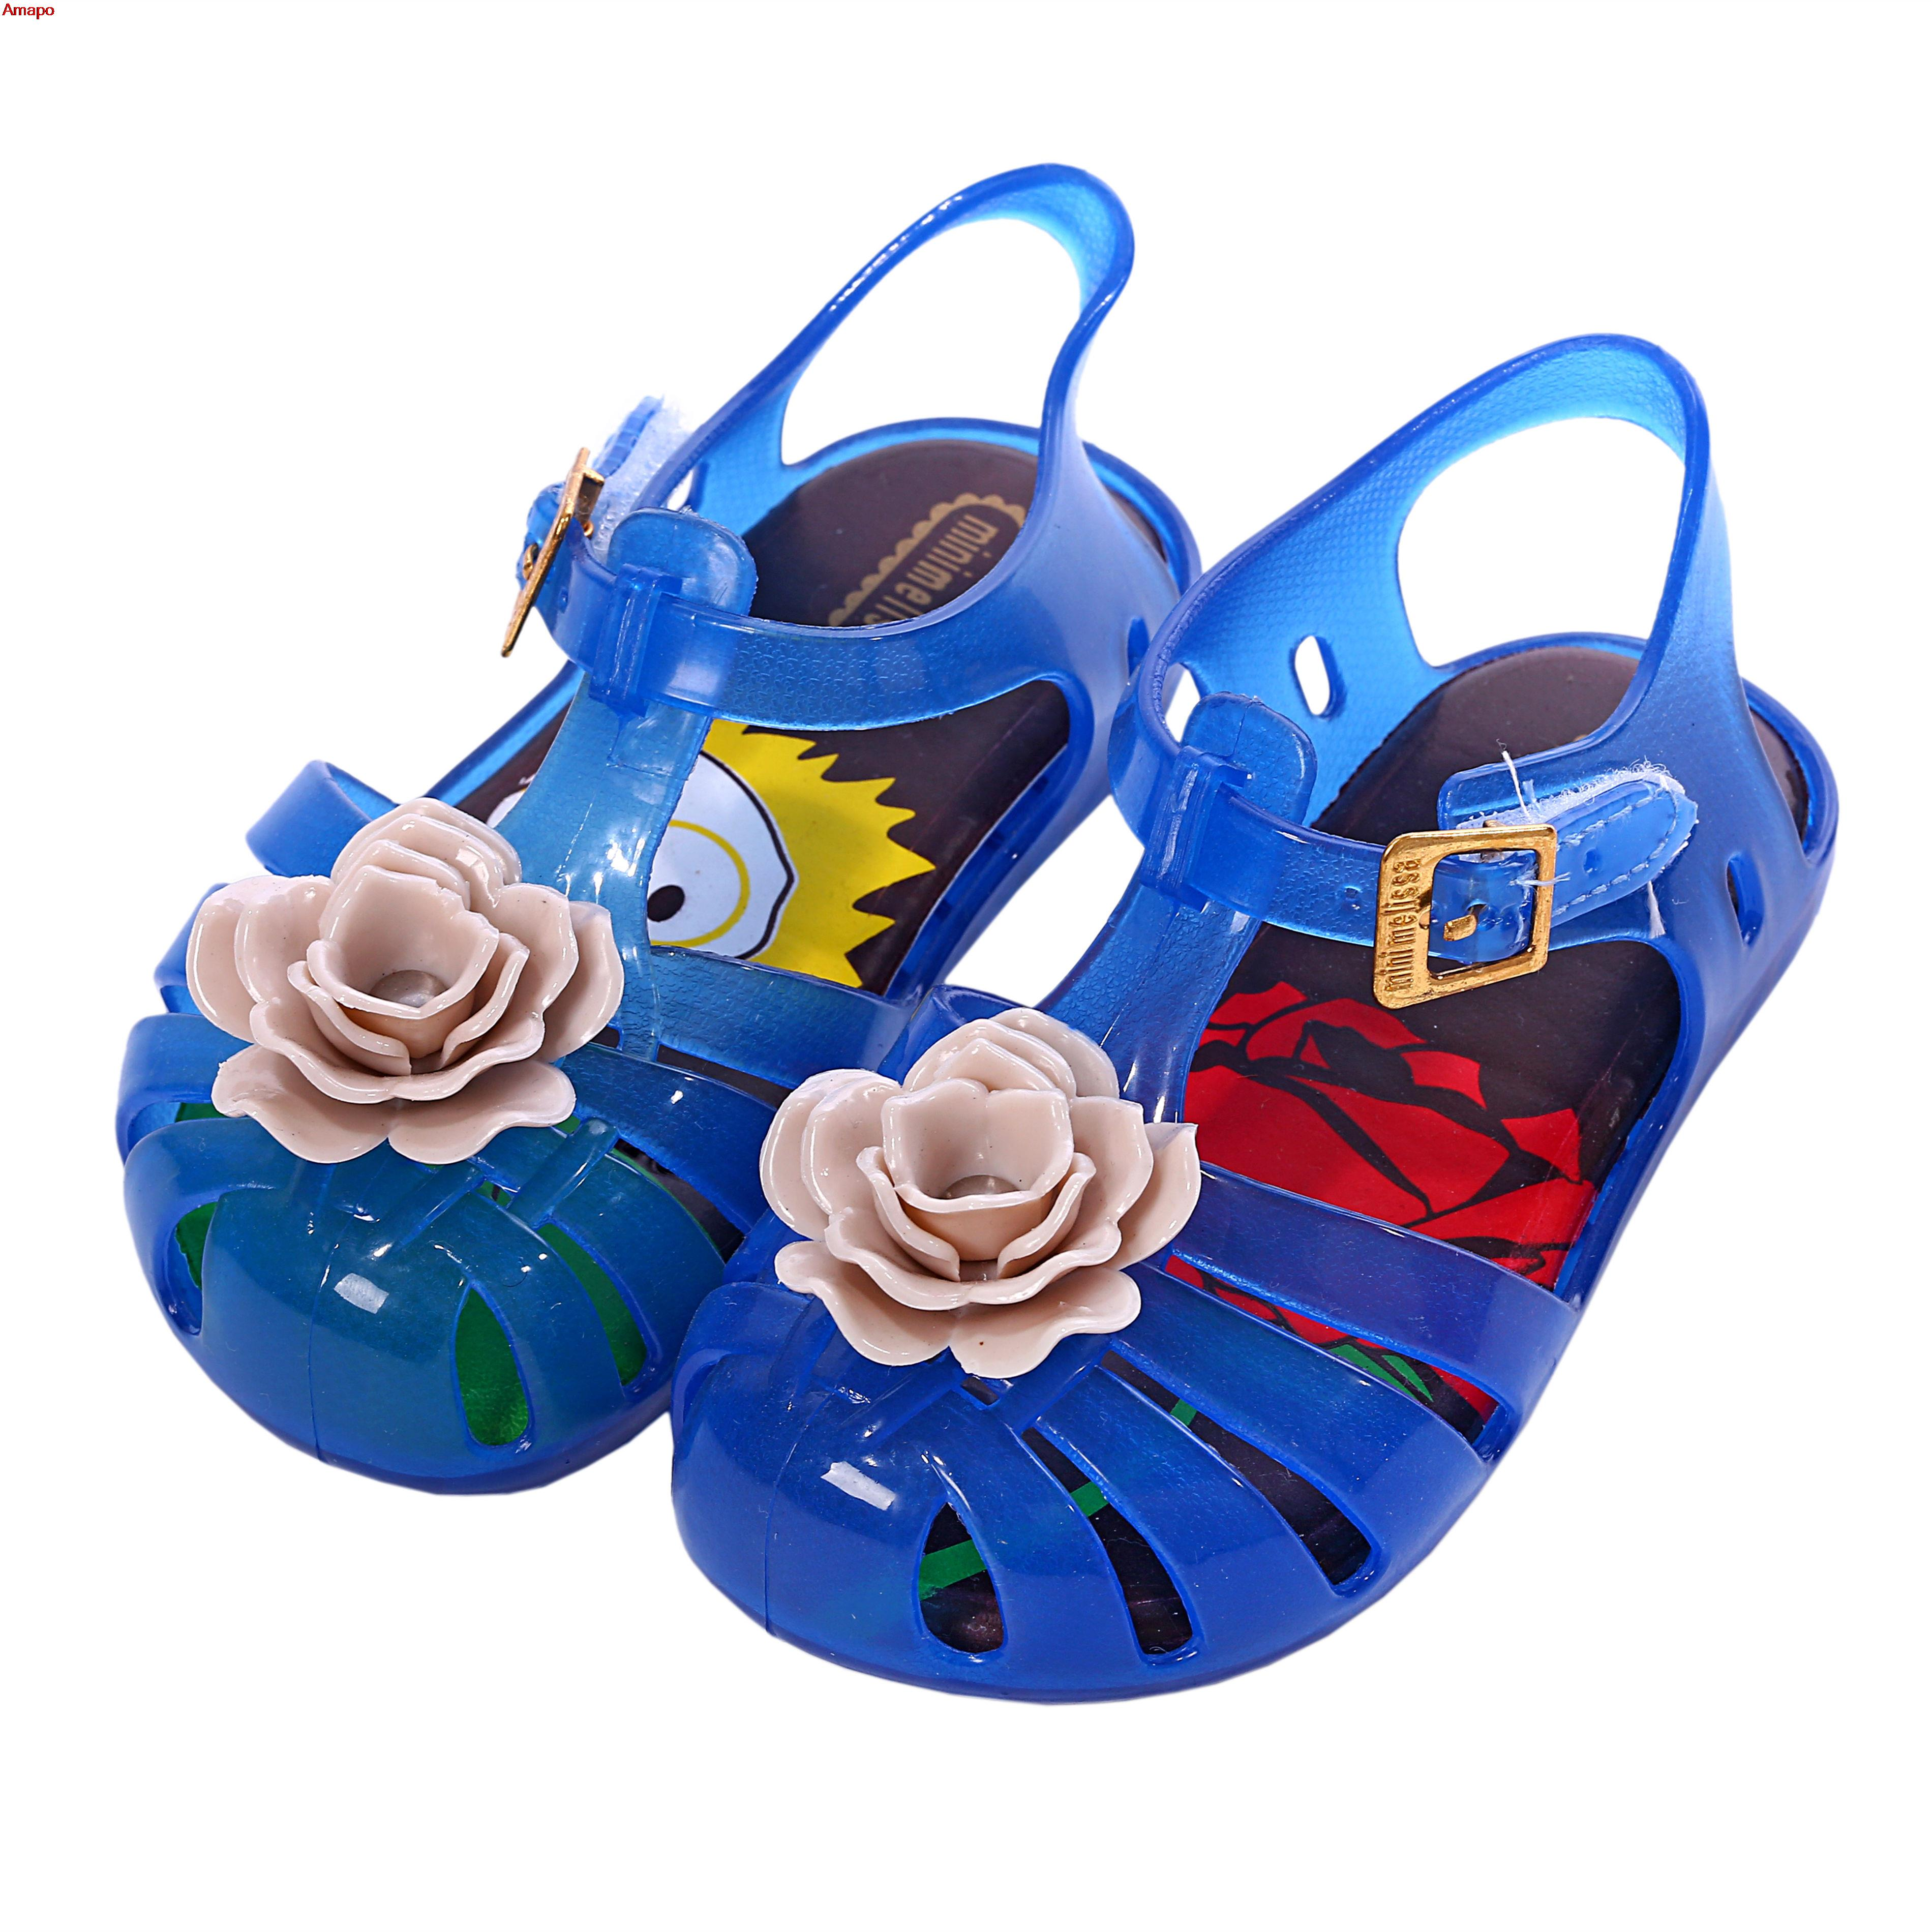 Mini Melissa 2016 new Girls Sandals rose flower style baby shoes Jelly print insole PVS Shoe 4 color choices Size 6-11(China (Mainland))